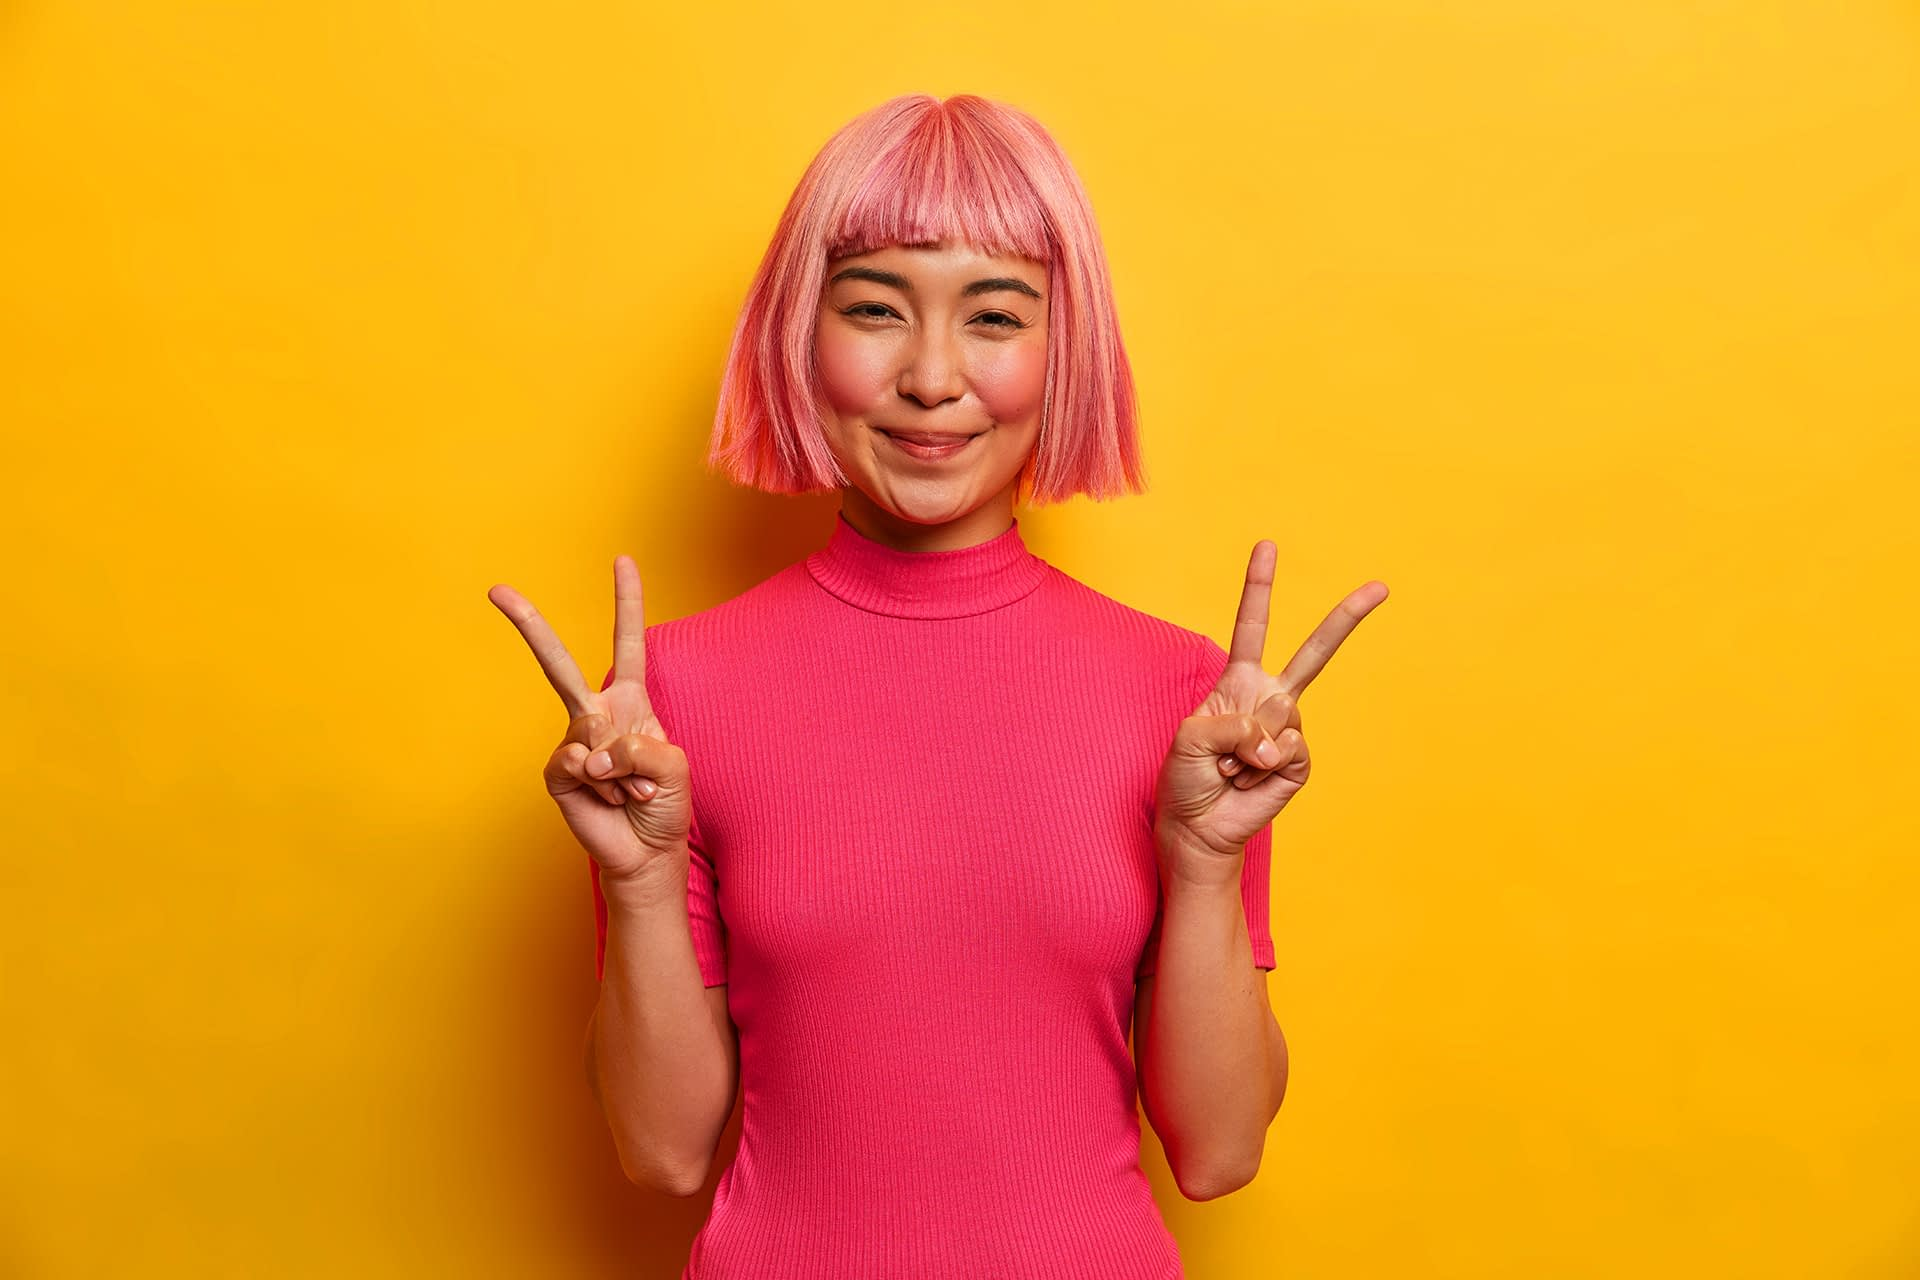 A happy Asian girl who makes a peace sign.